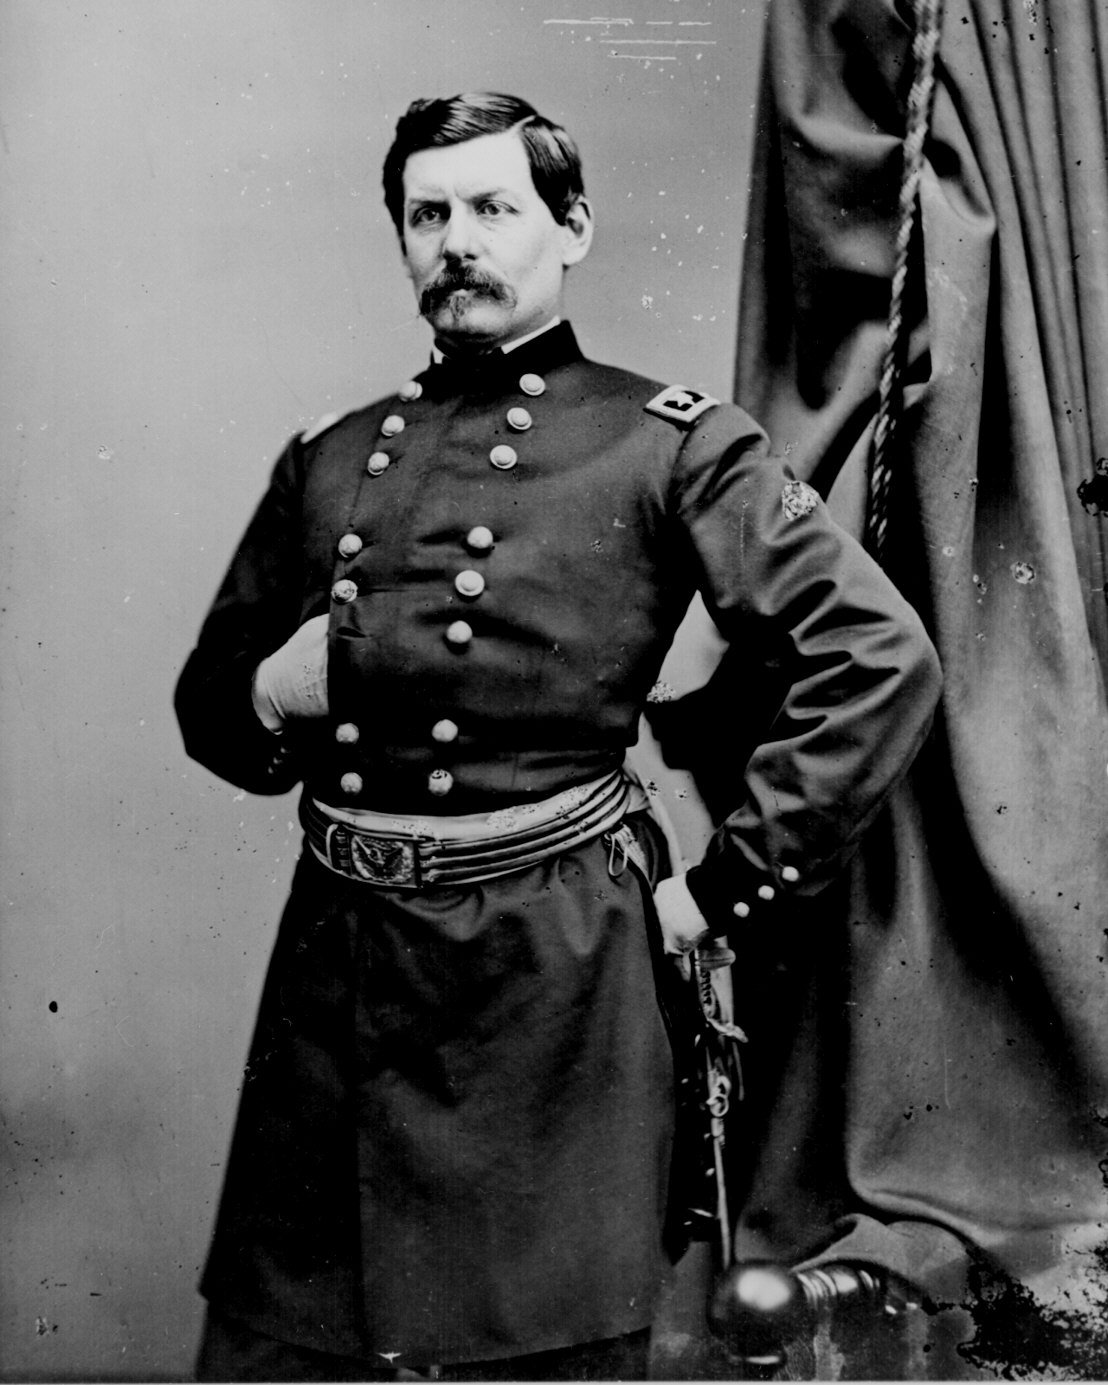 Handsome General McClellan, courtesy of the LOC.